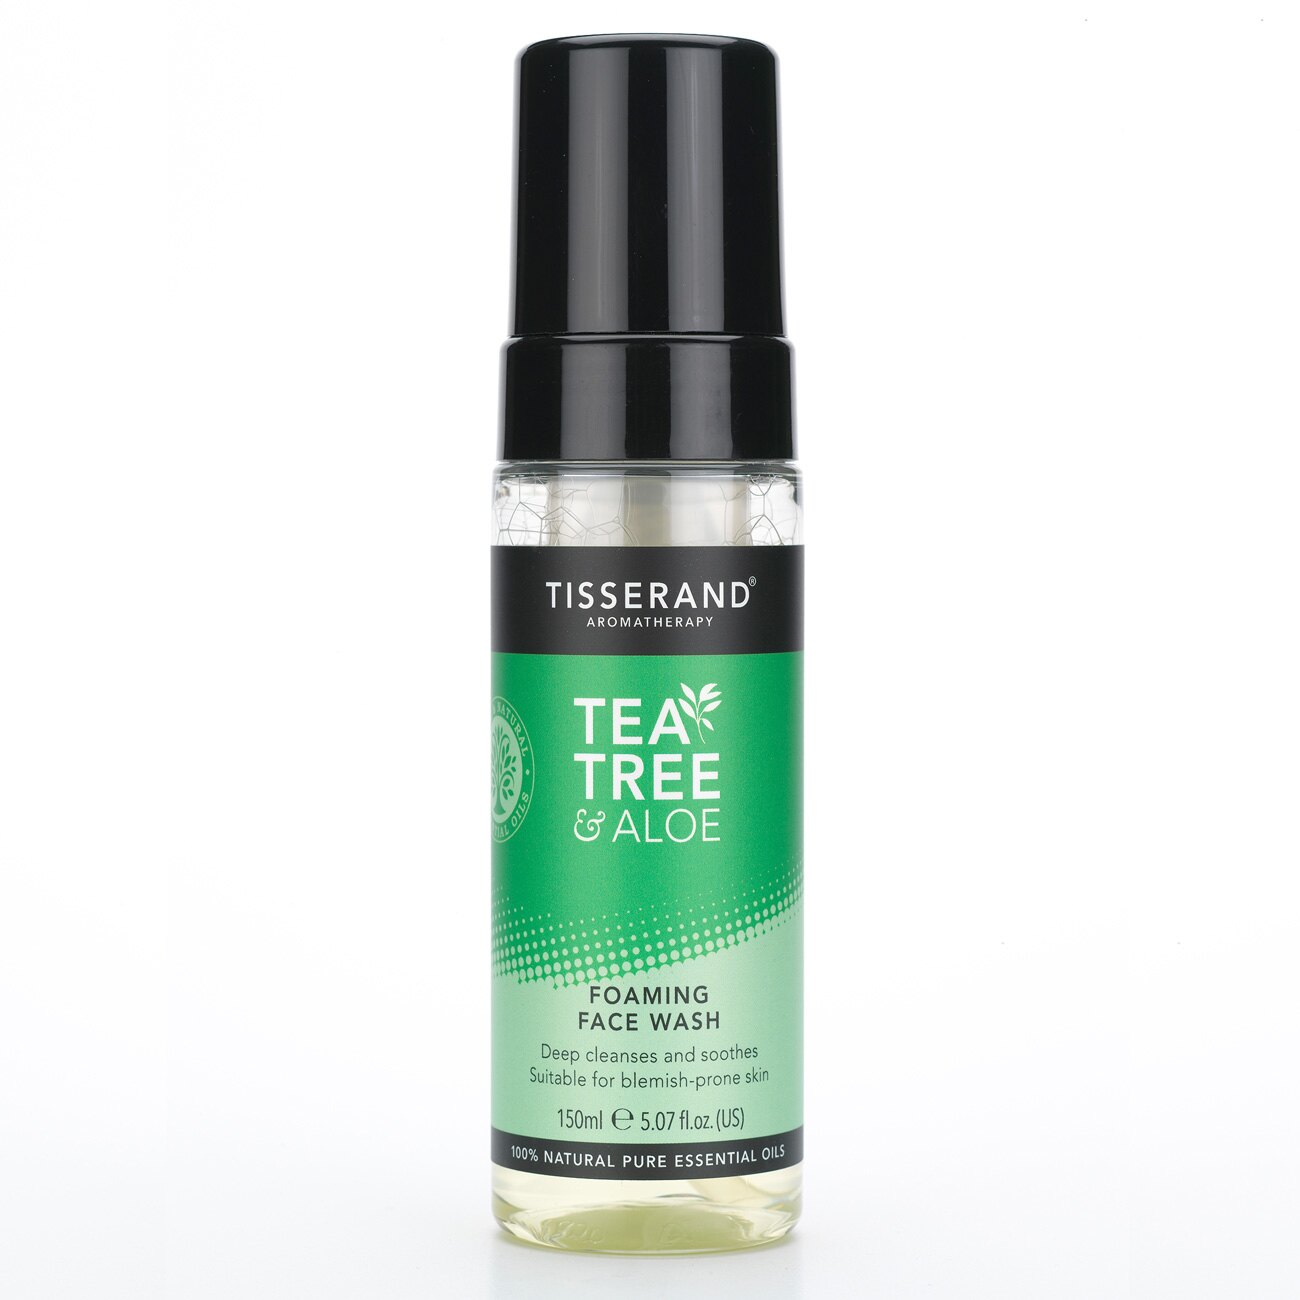 茶樹控油潔面慕斯 TEA TREE & ALOE FOAMING FACE WASH 150ml